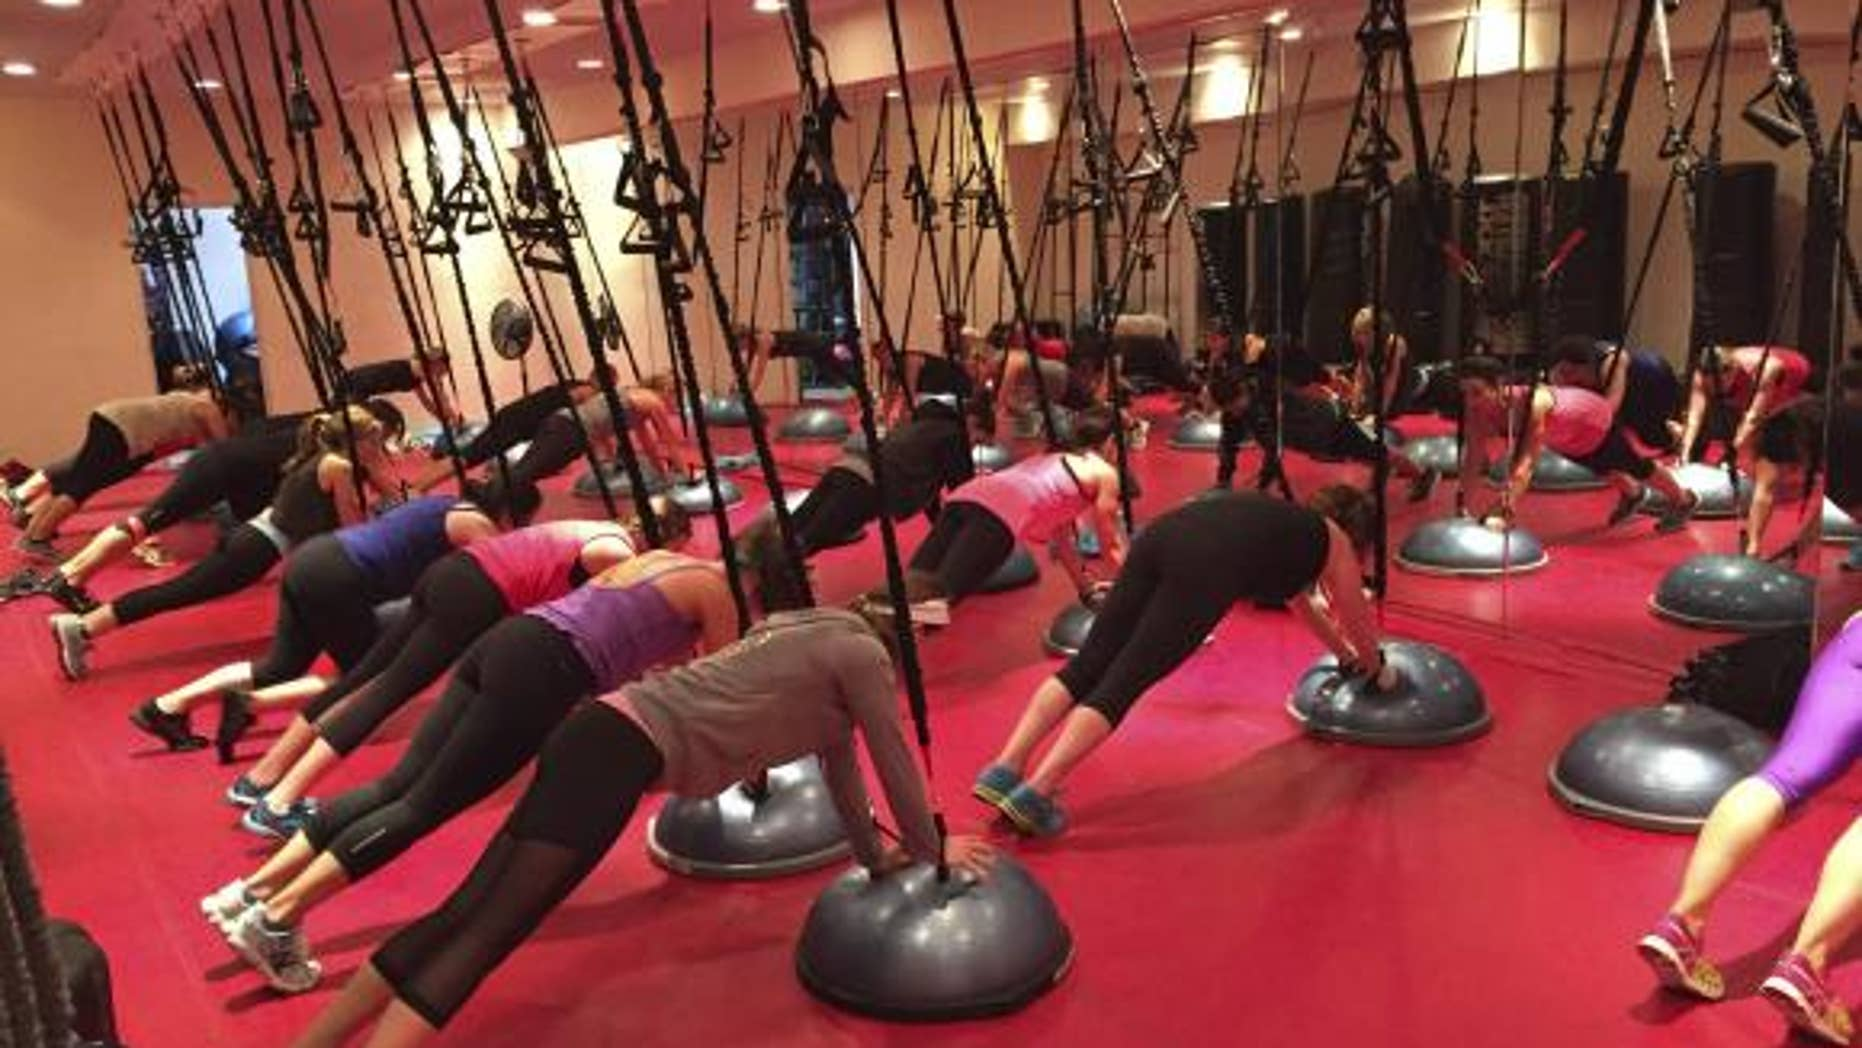 Participants work out during a Spiderband fitness class in a handout picture taken at Fuel Fitness in Brooklyn, New York, in October, 2014.